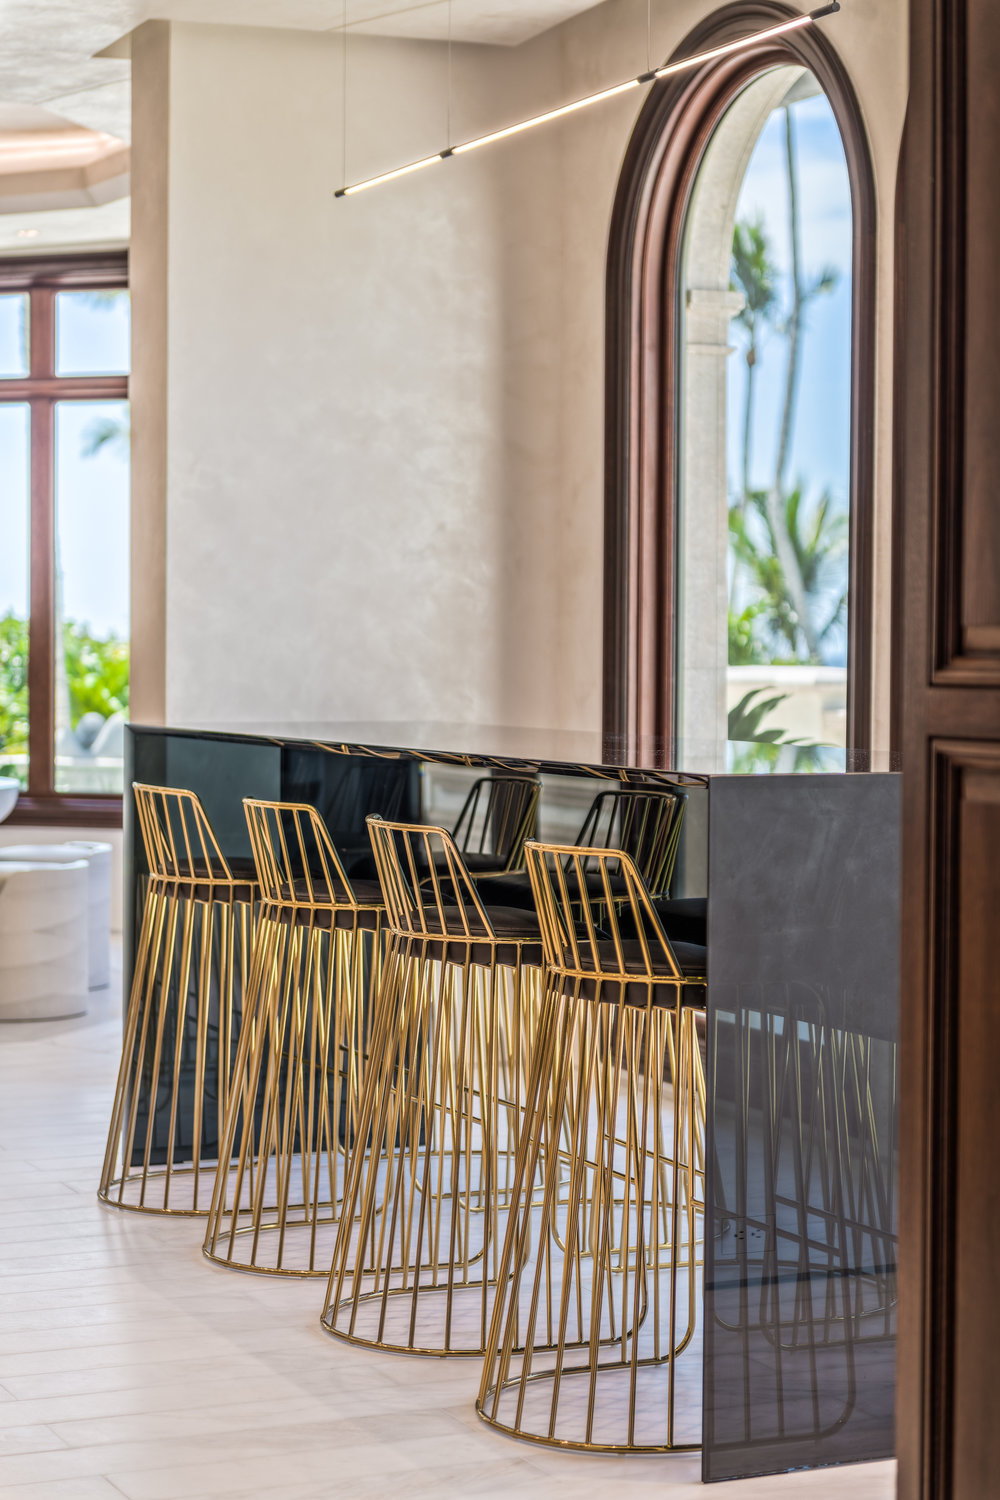 Private Beachfront Estate Bespoke kitchen Custom architectural and decorative details throughout, including black glass table by designer Chad Jensen